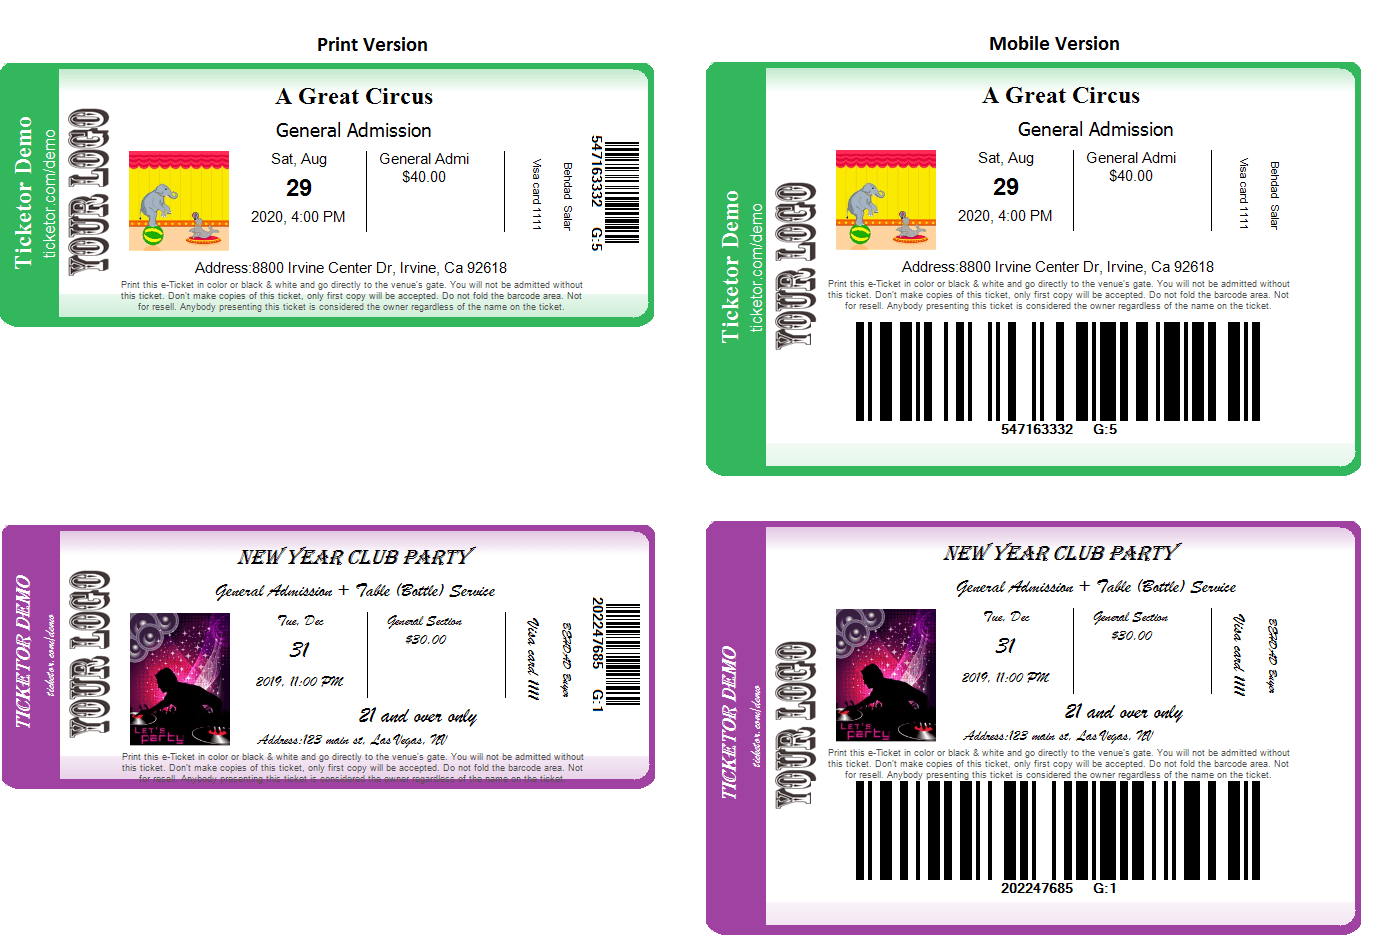 Ticketor e-tickets print version vs mobile version. Big barcode to be easily scanned from the phone display.